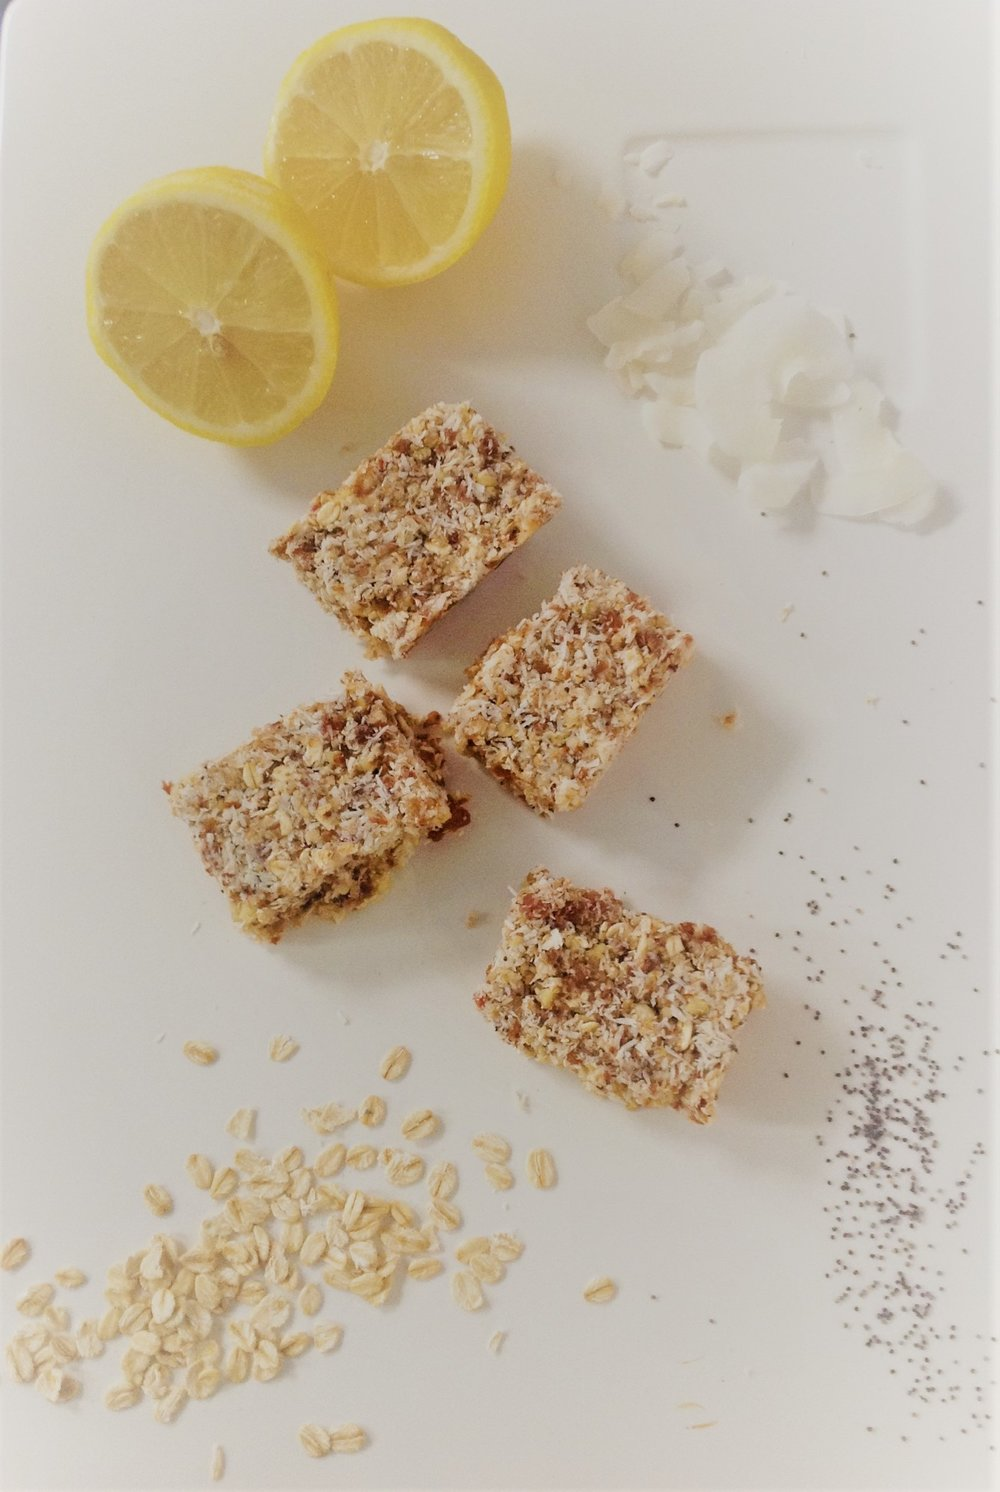 Lemon Poppyseed Energy Bars - Easy, Healthy, Plant-Based, Gluten-Free, Oil-Free, No Refined Sugar or Syrup, Raw Recipe (6).jpg